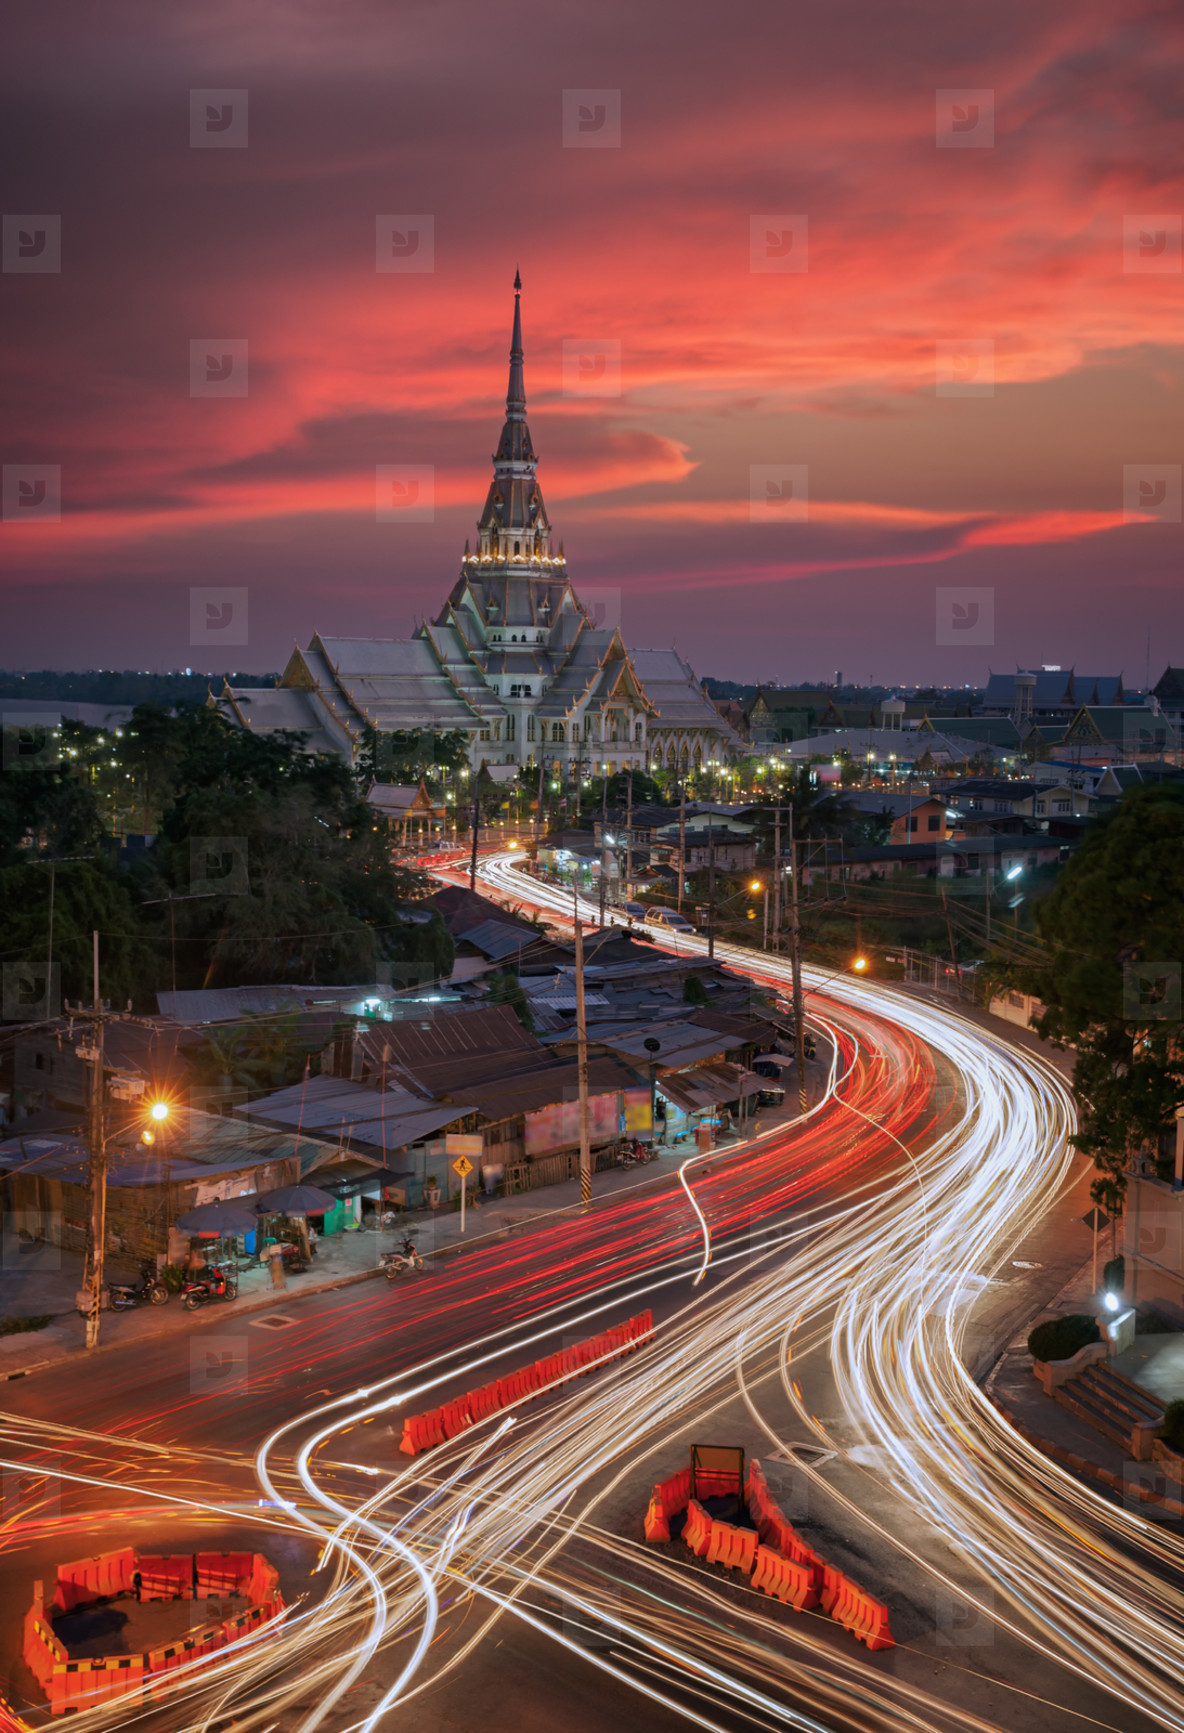 Light Trails in Thailand